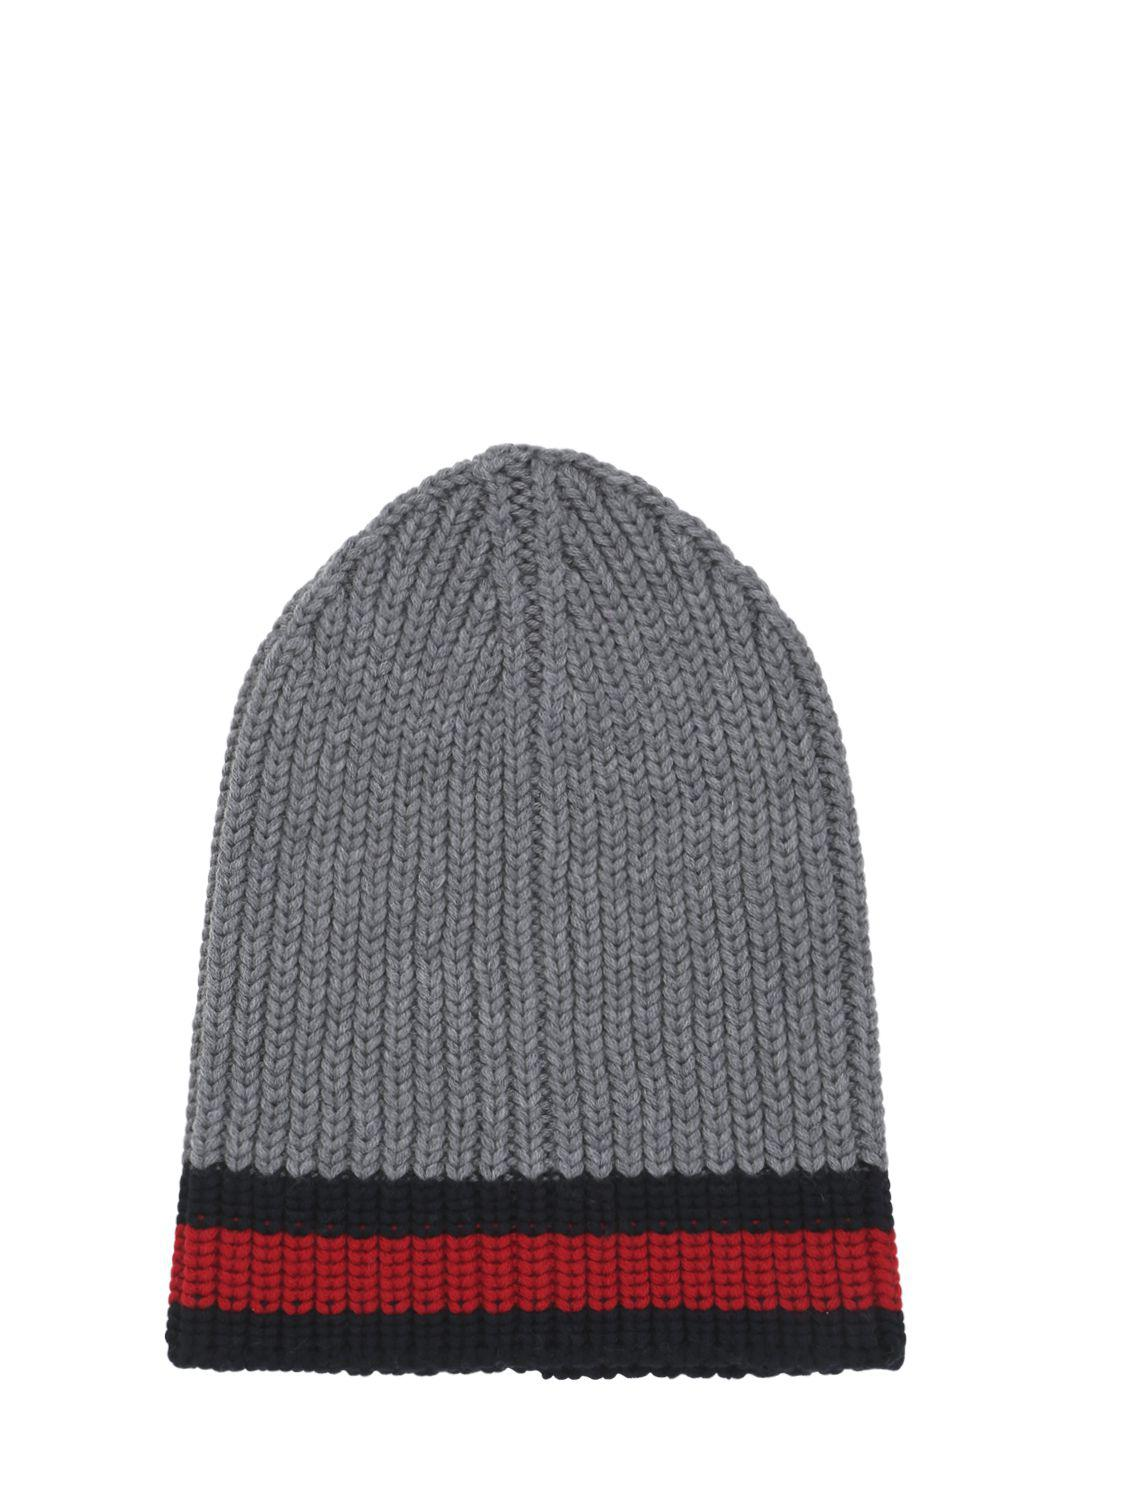 def5726257d Gucci Web Wool Cable Knit Beanie Hat in Gray - Lyst